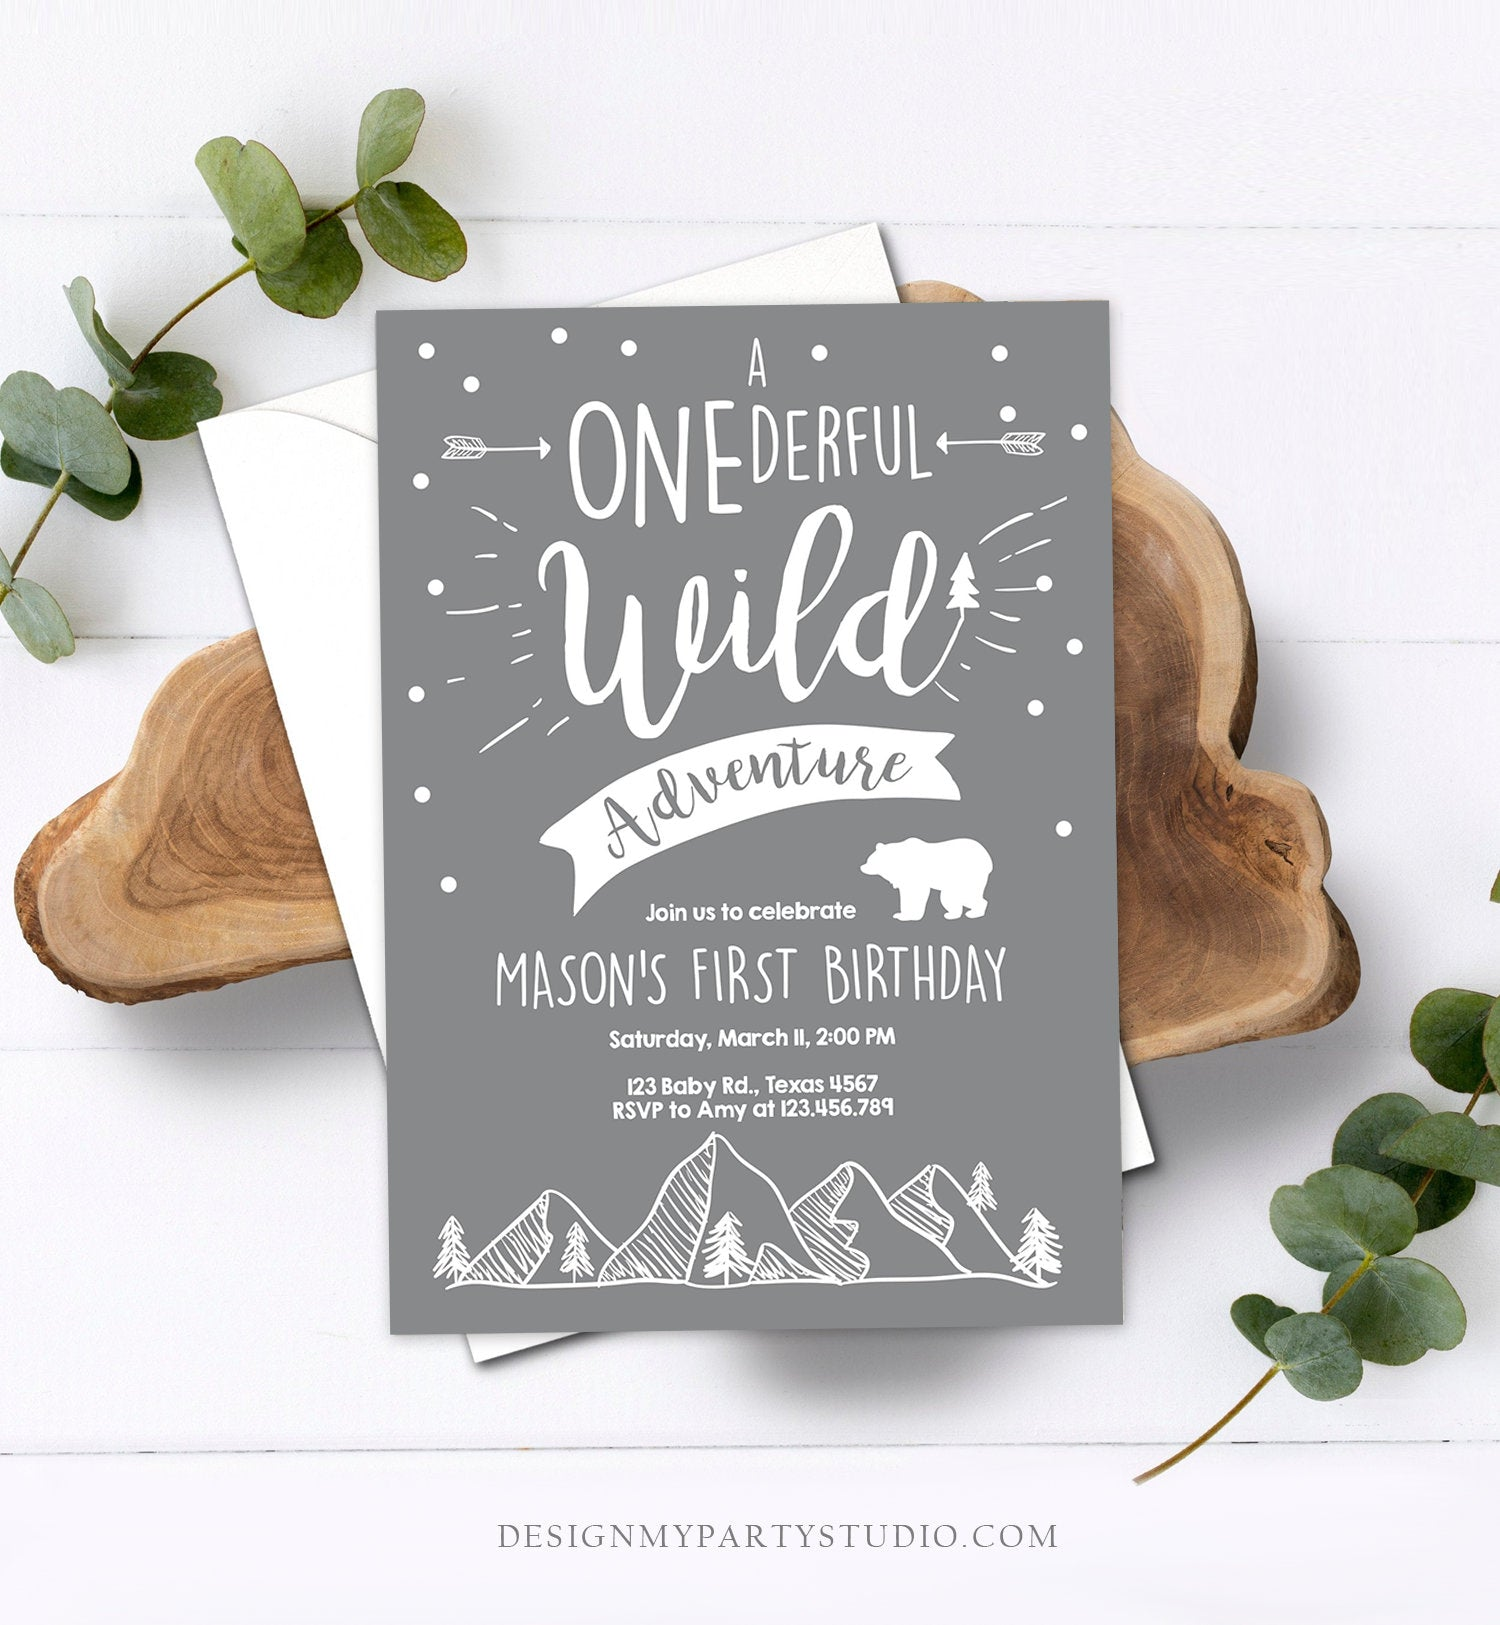 Editable A Onederful Wild Adventure First Birthday Invitation Wild Things Boy Mountains Bear Outdoor Grey Gray Download Corjl Template 0083